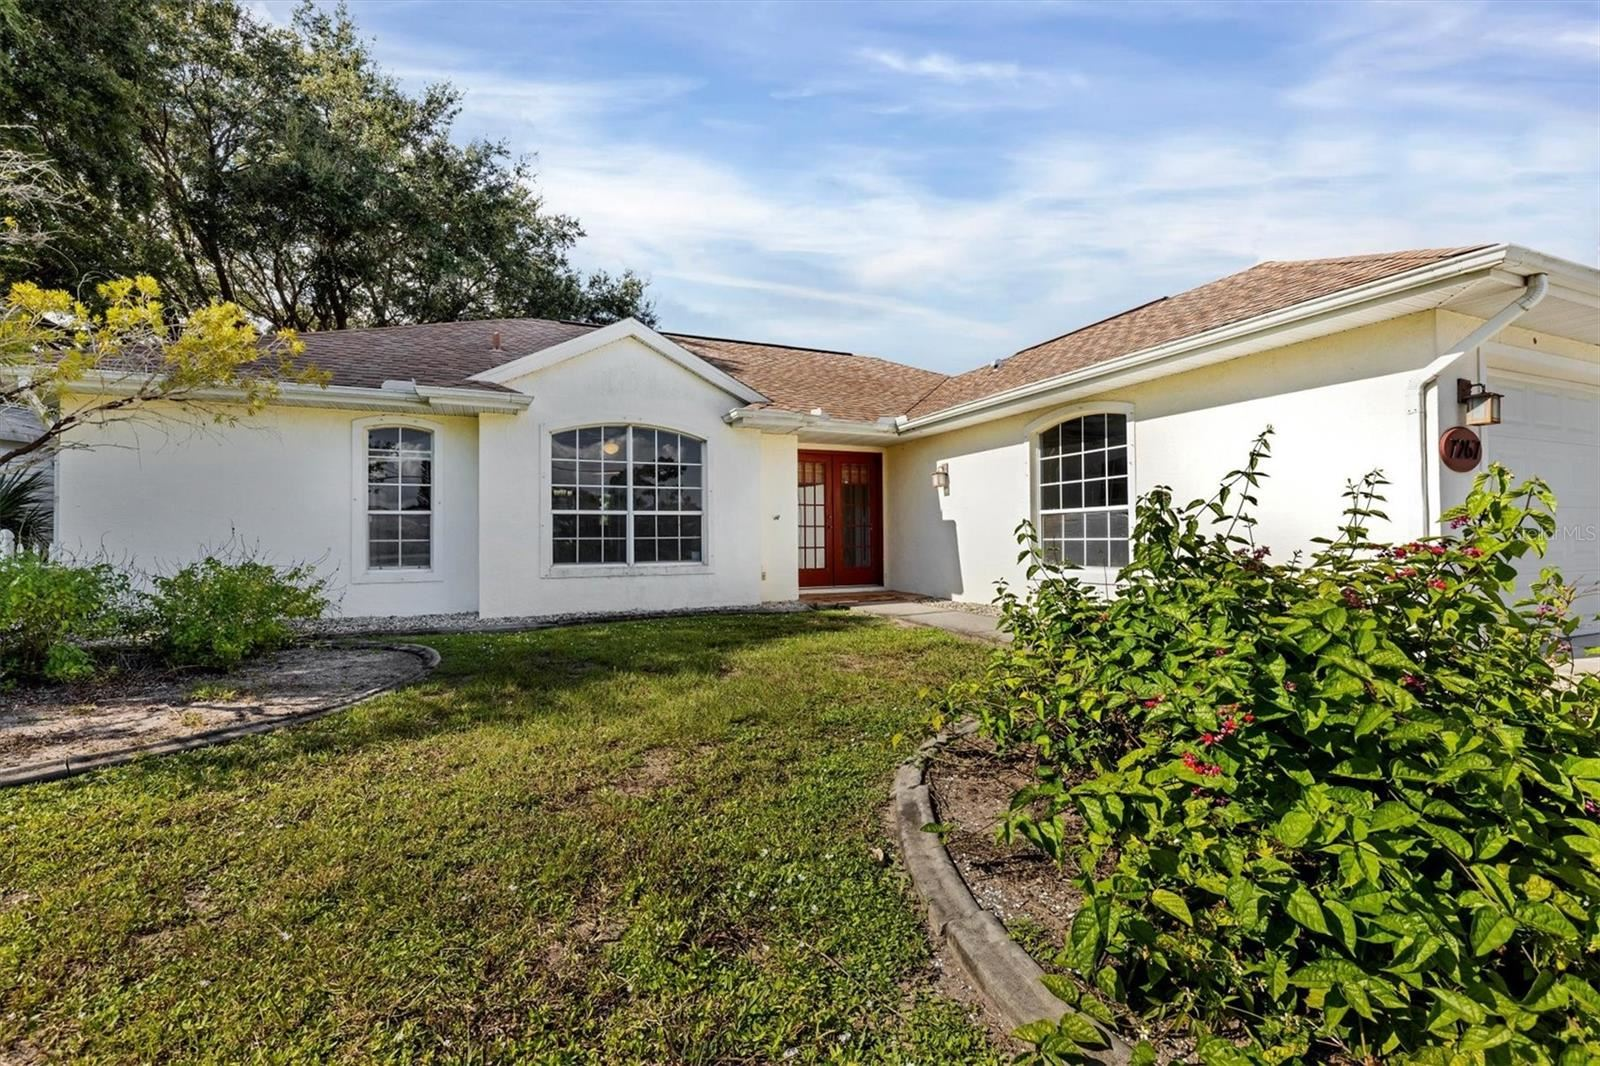 Photo of 7267 TEABERRY STREET, ENGLEWOOD, FL 34224 (MLS # D6121740)